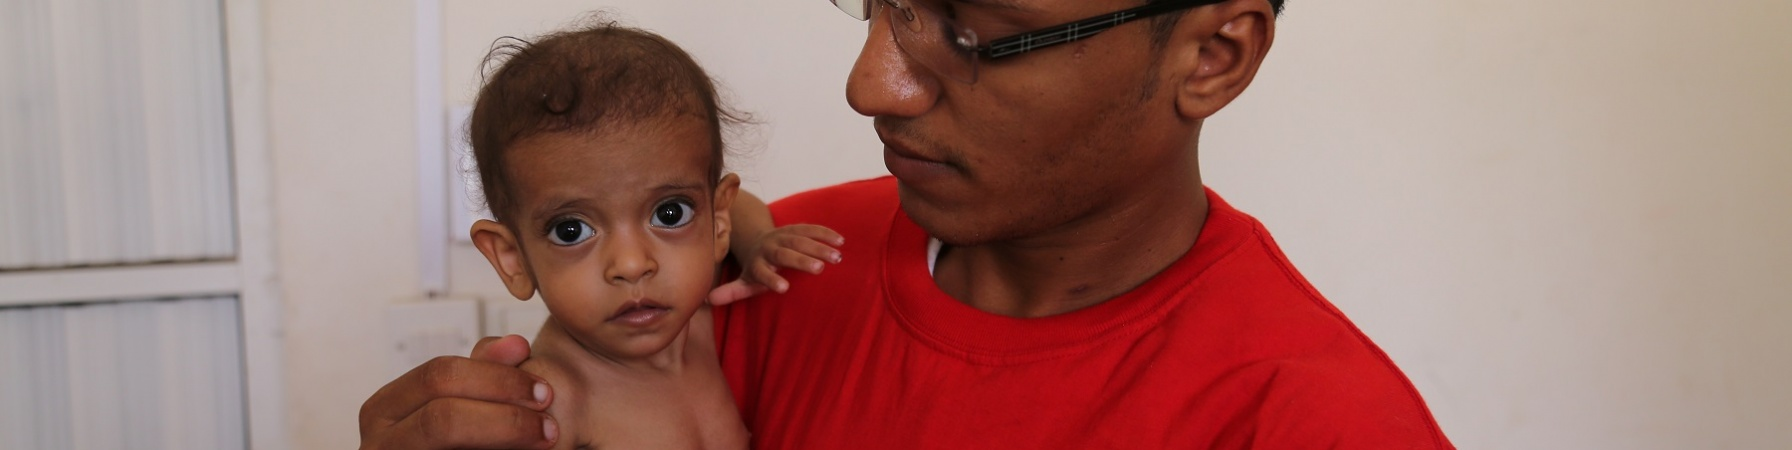 Bambino yemenita malnutrito in braccio a operatore Save the Children